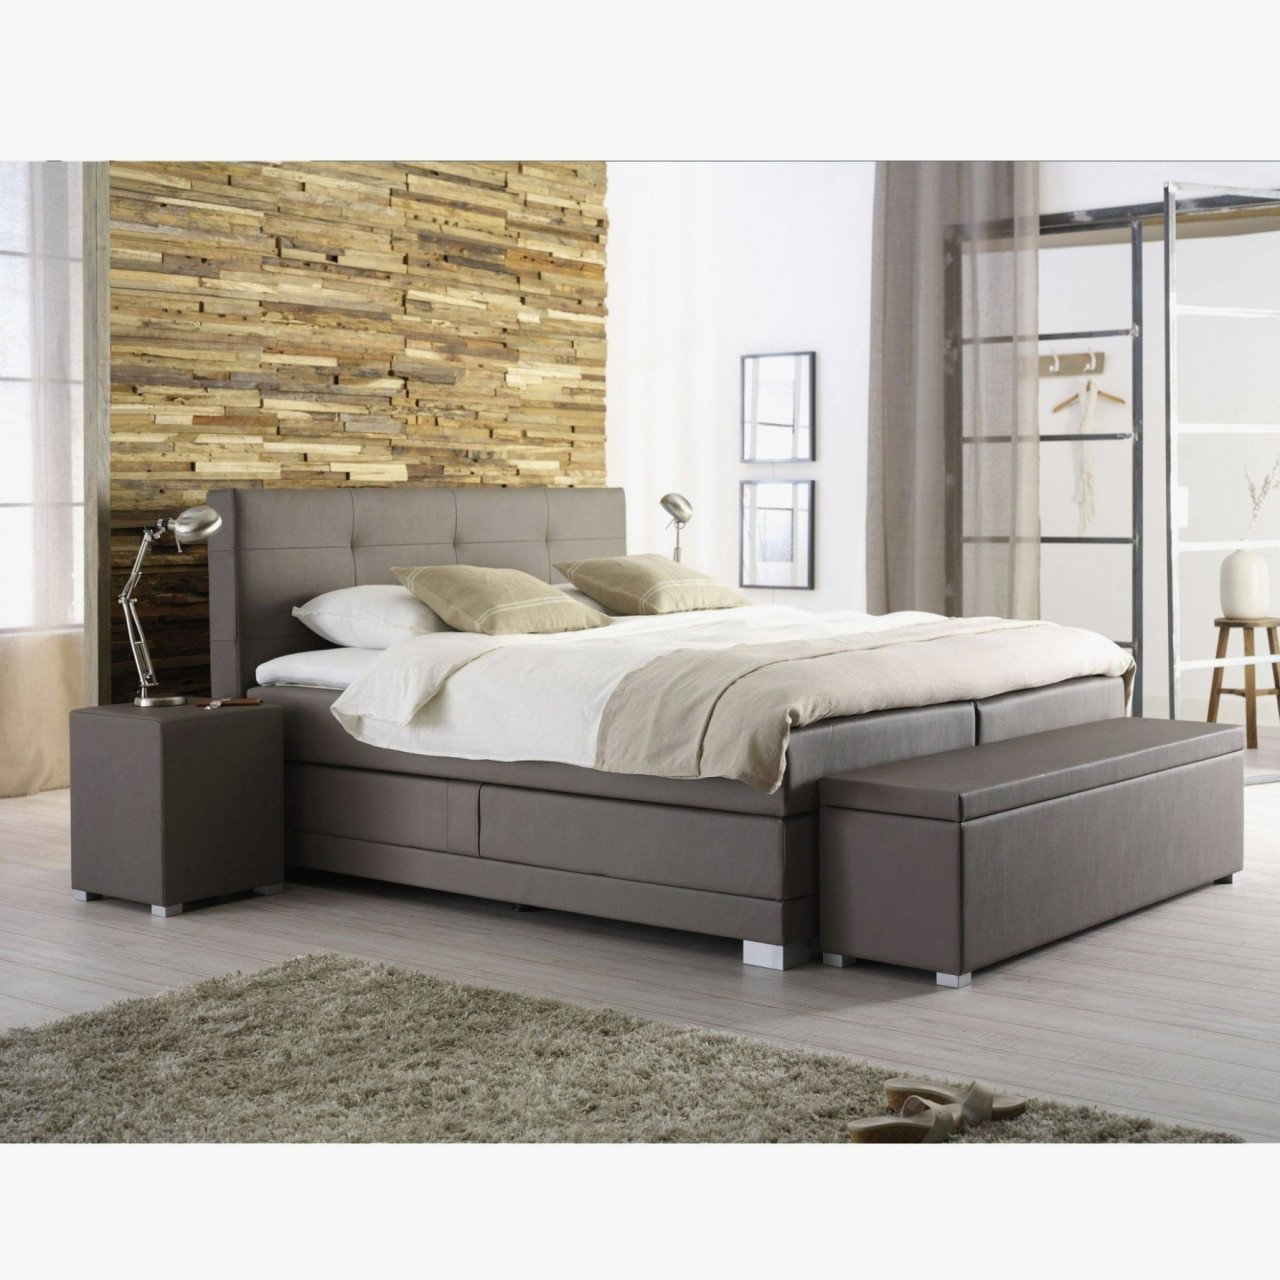 Tufted Queen Bedroom Set Fresh Bed with Drawers Under — Procura Home Blog